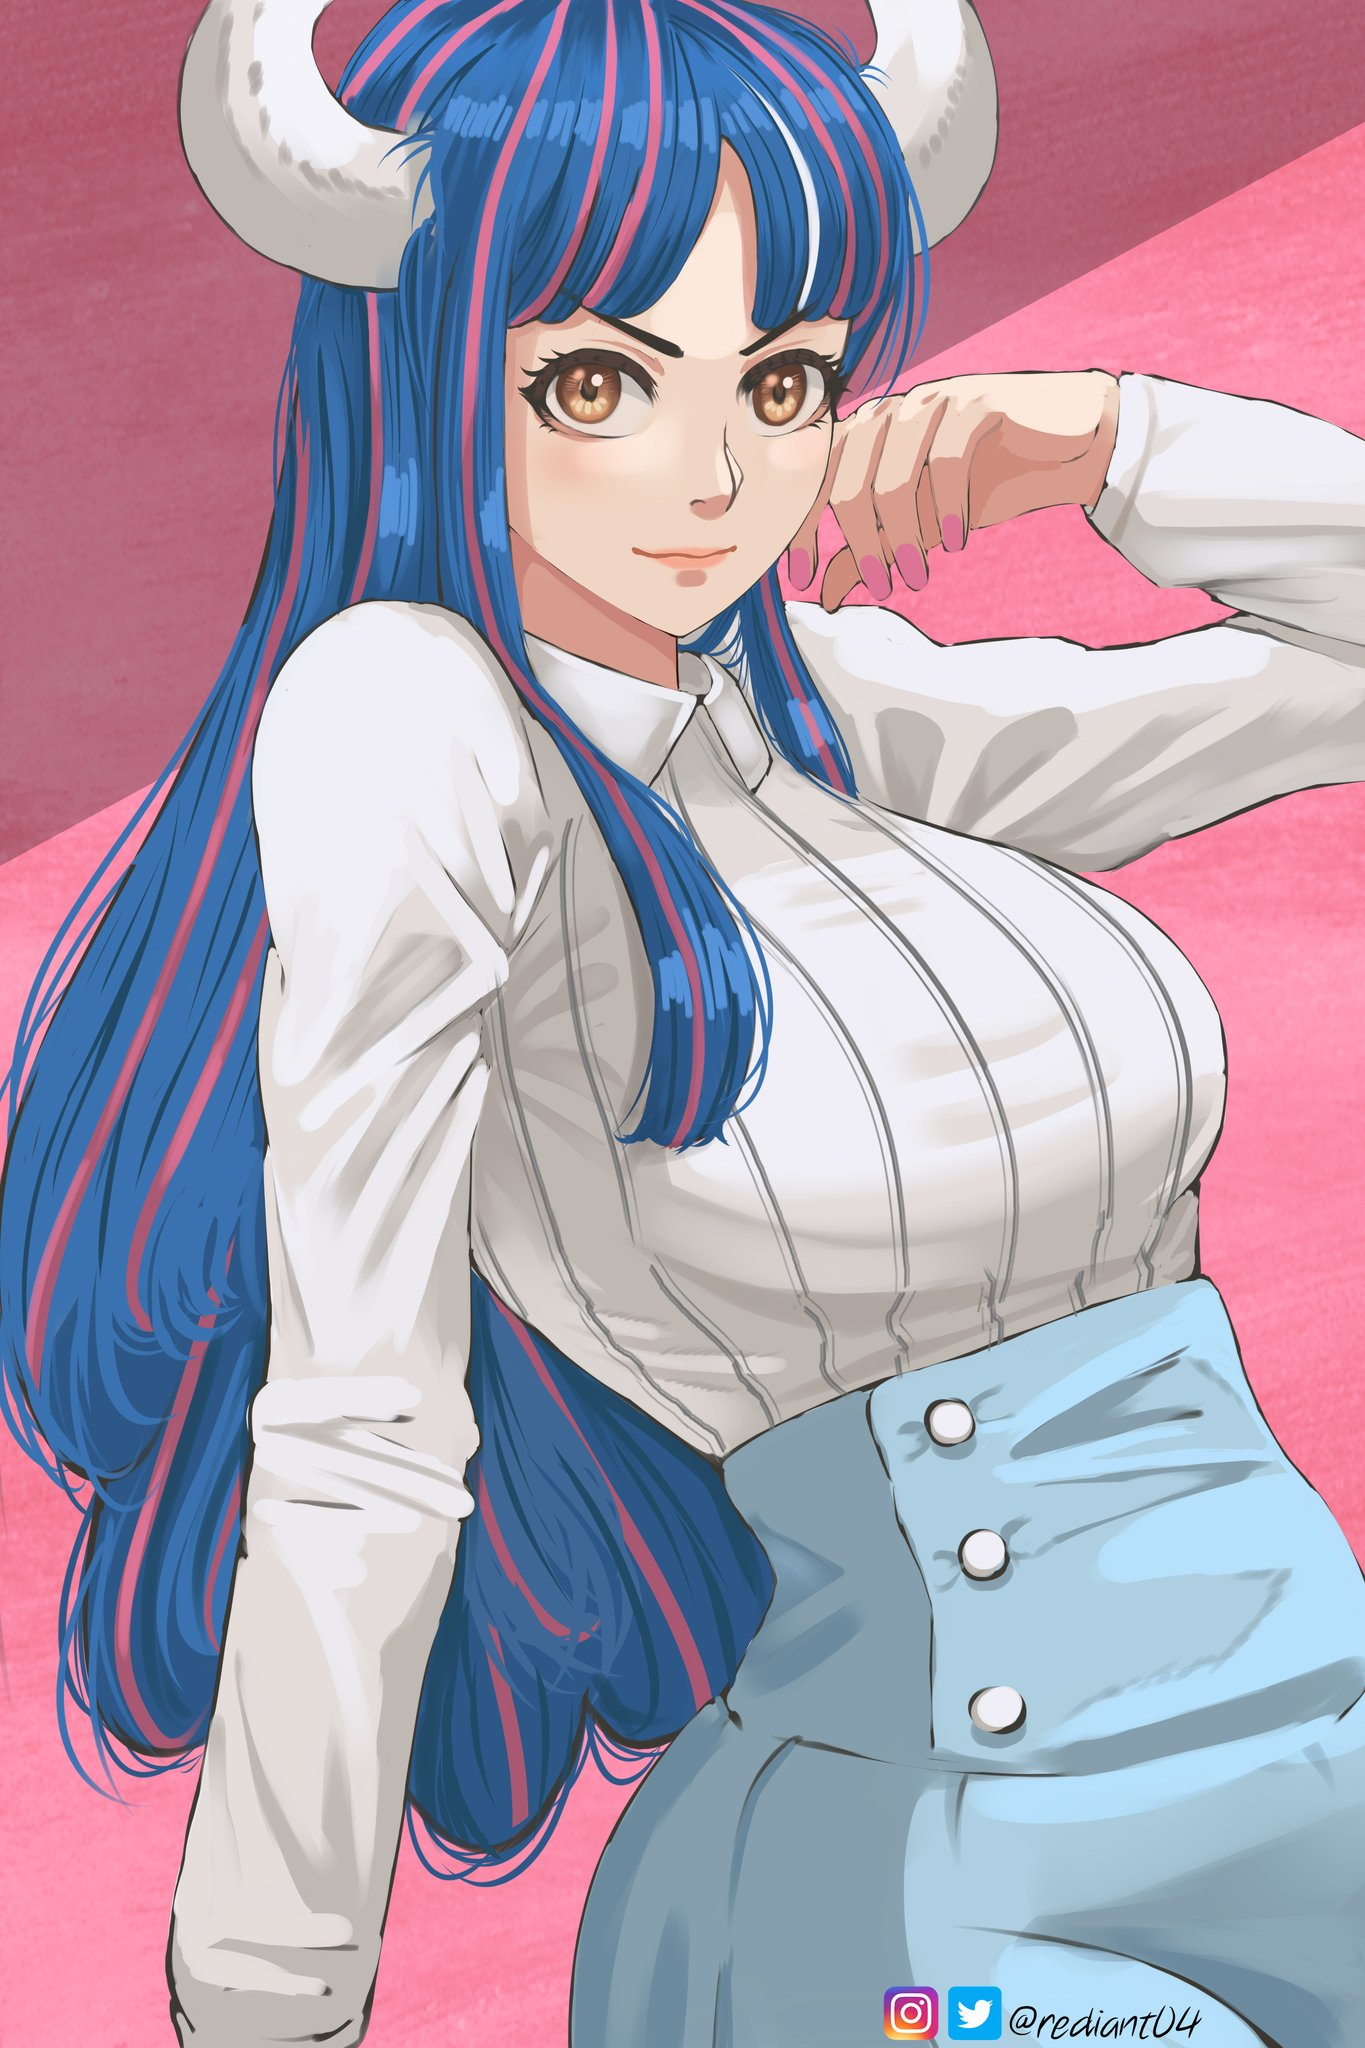 1girl artist_name bangs blue_hair blue_skirt brown_eyes buttons closed_mouth collared_shirt hand_up highres horns lips long_hair long_sleeves multicolored_hair nail_polish one_piece pink_background pink_hair pink_nails rediant04 ribbed_shirt shadow shirt simple_background sitting skirt solo twitter_username two-tone_hair ulti_(one_piece) white_shirt